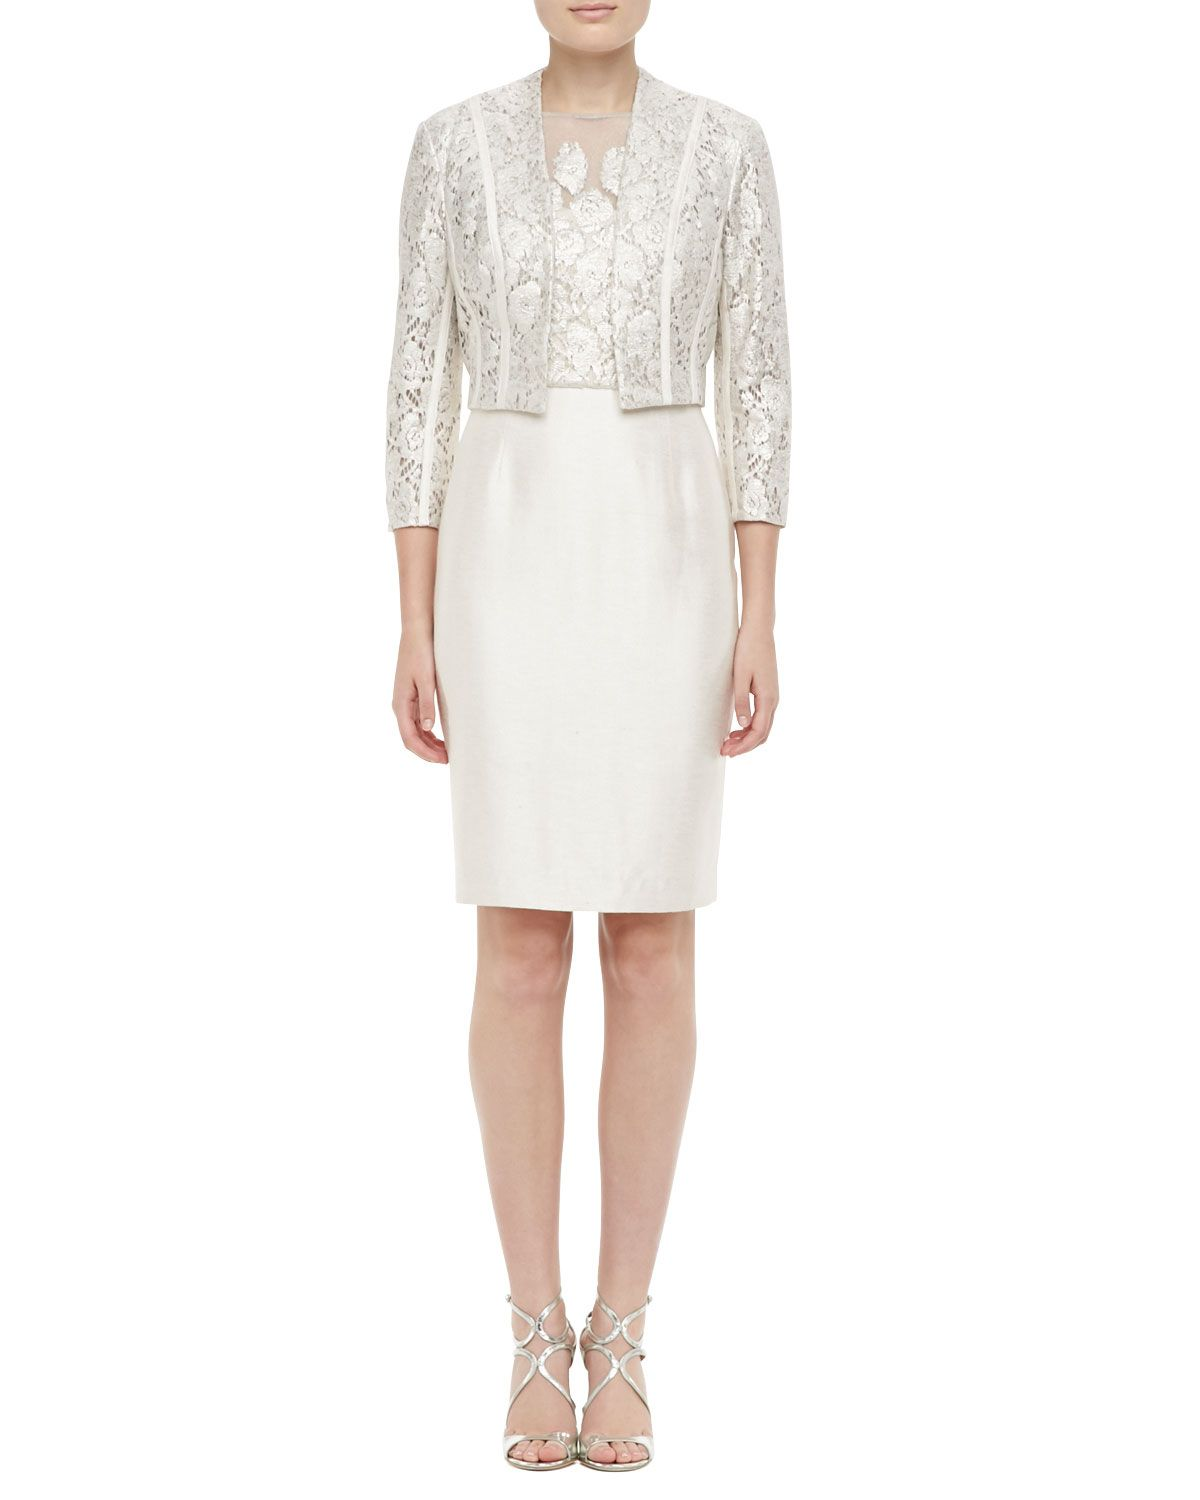 Kay unger new york 34 sleeve lace bolero lace cocktail dress kay unger new york lace bolero lace cocktail dress neiman marcus ombrellifo Image collections